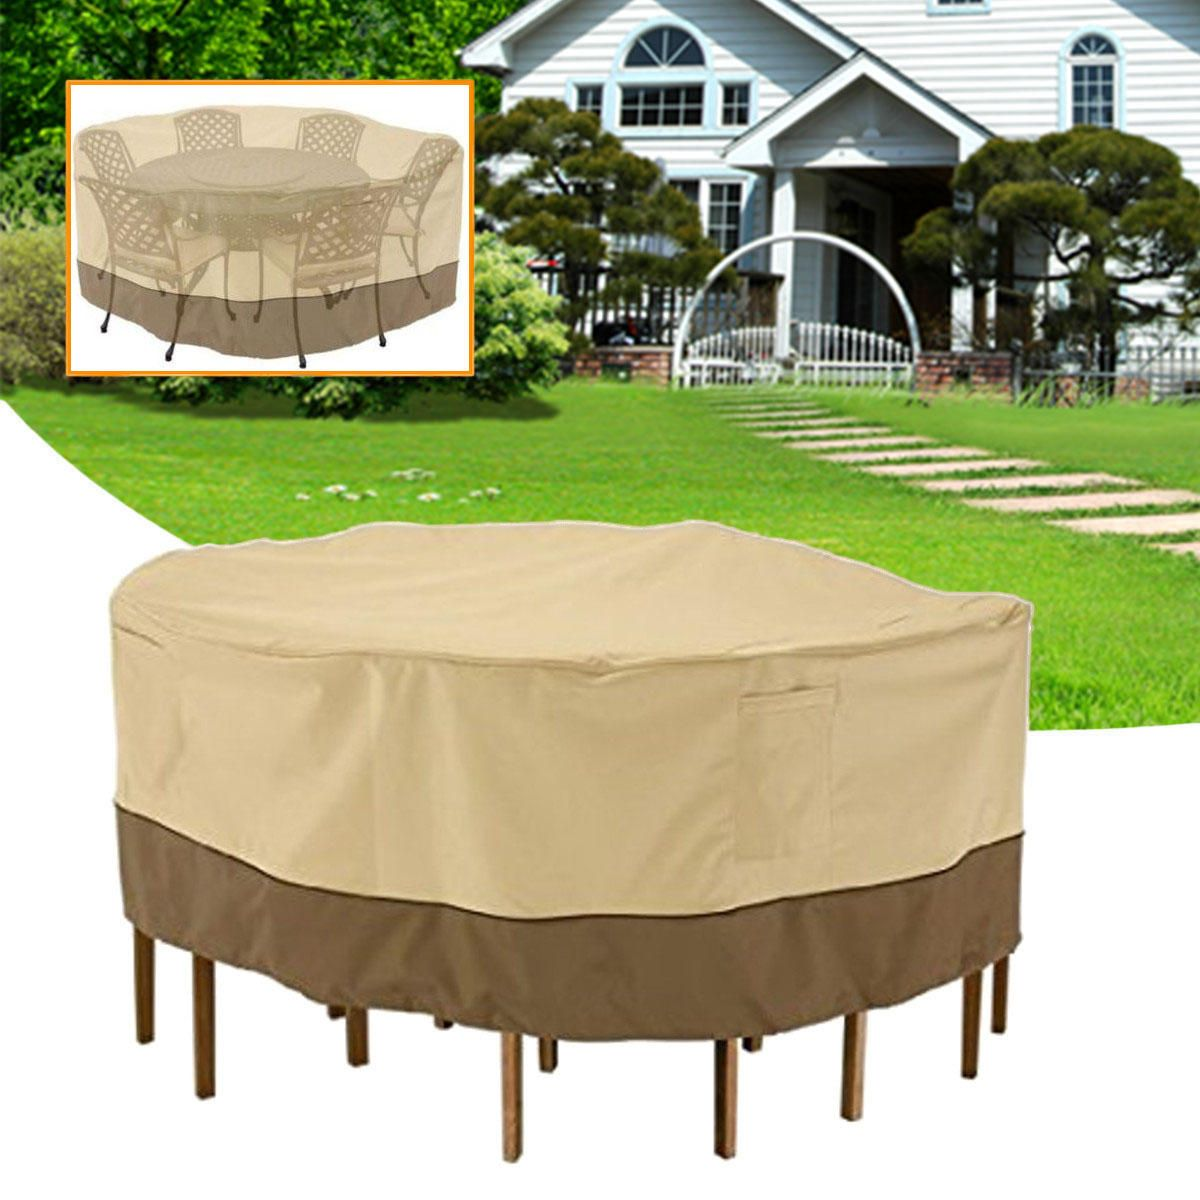 Us 36 62 Garden Round Waterproof Table Cover Patio Outdoor Furniture Set Shelter Protection Furniture From Home And Garden On Banggood Com Outdoor Furniture Sets Outdoor Patio Furniture Covered Patio